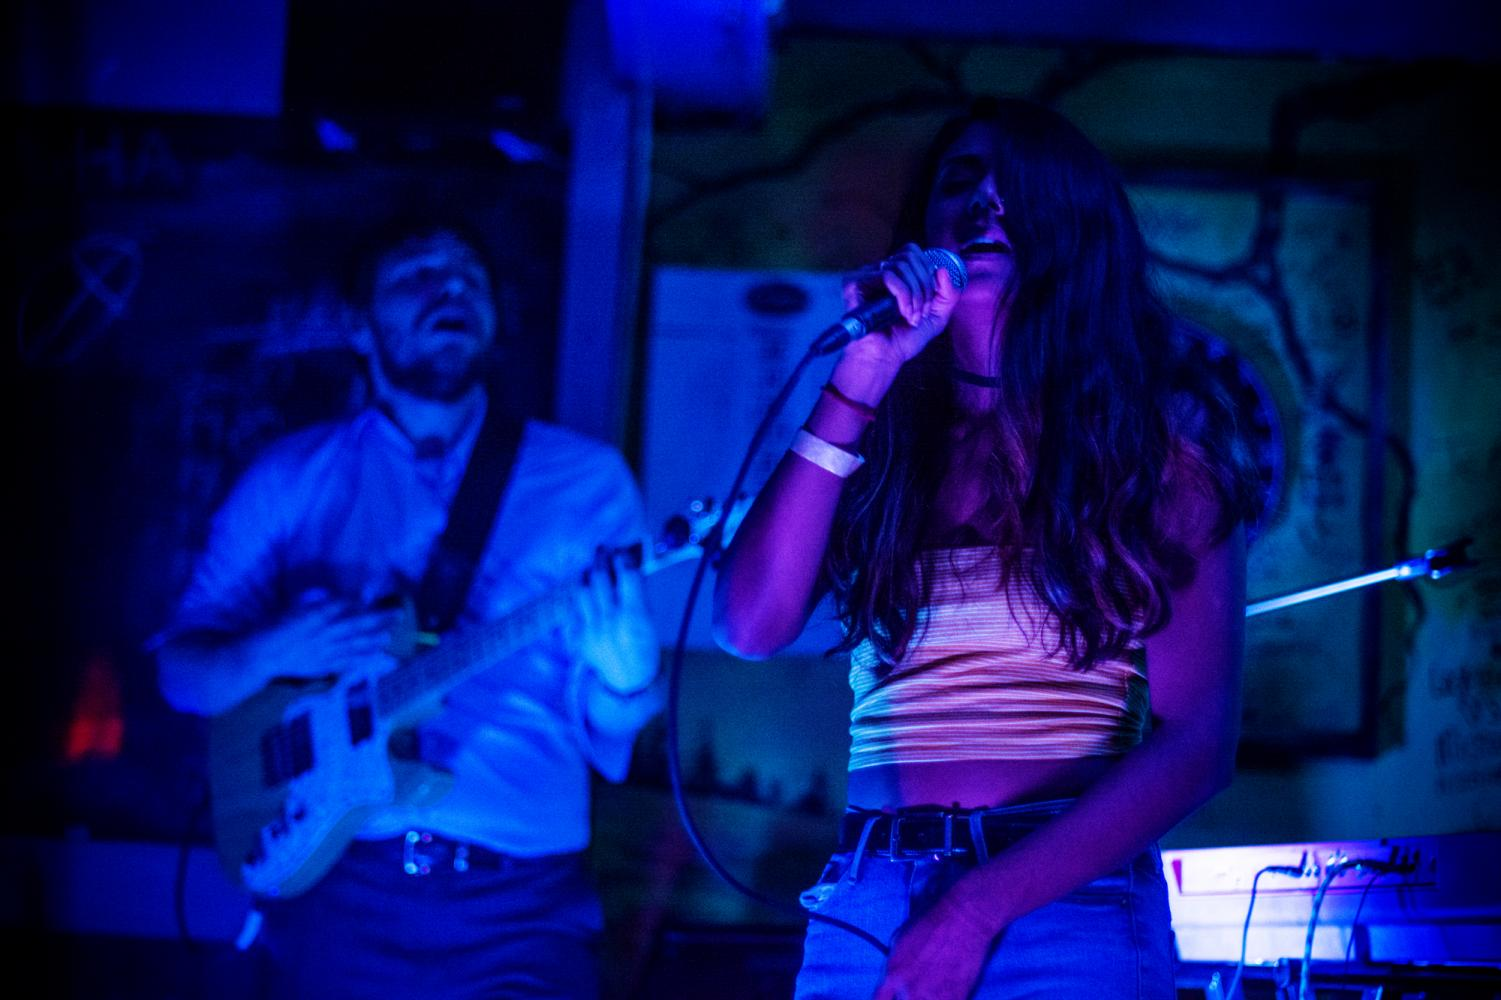 Foxy Moron's lead singer, Elora Dash, takes center-stage during Saturday's show at TApp Room while guitarist Lucas Triba shreds alongside her. The band's next show is on February 9 at Ransom.